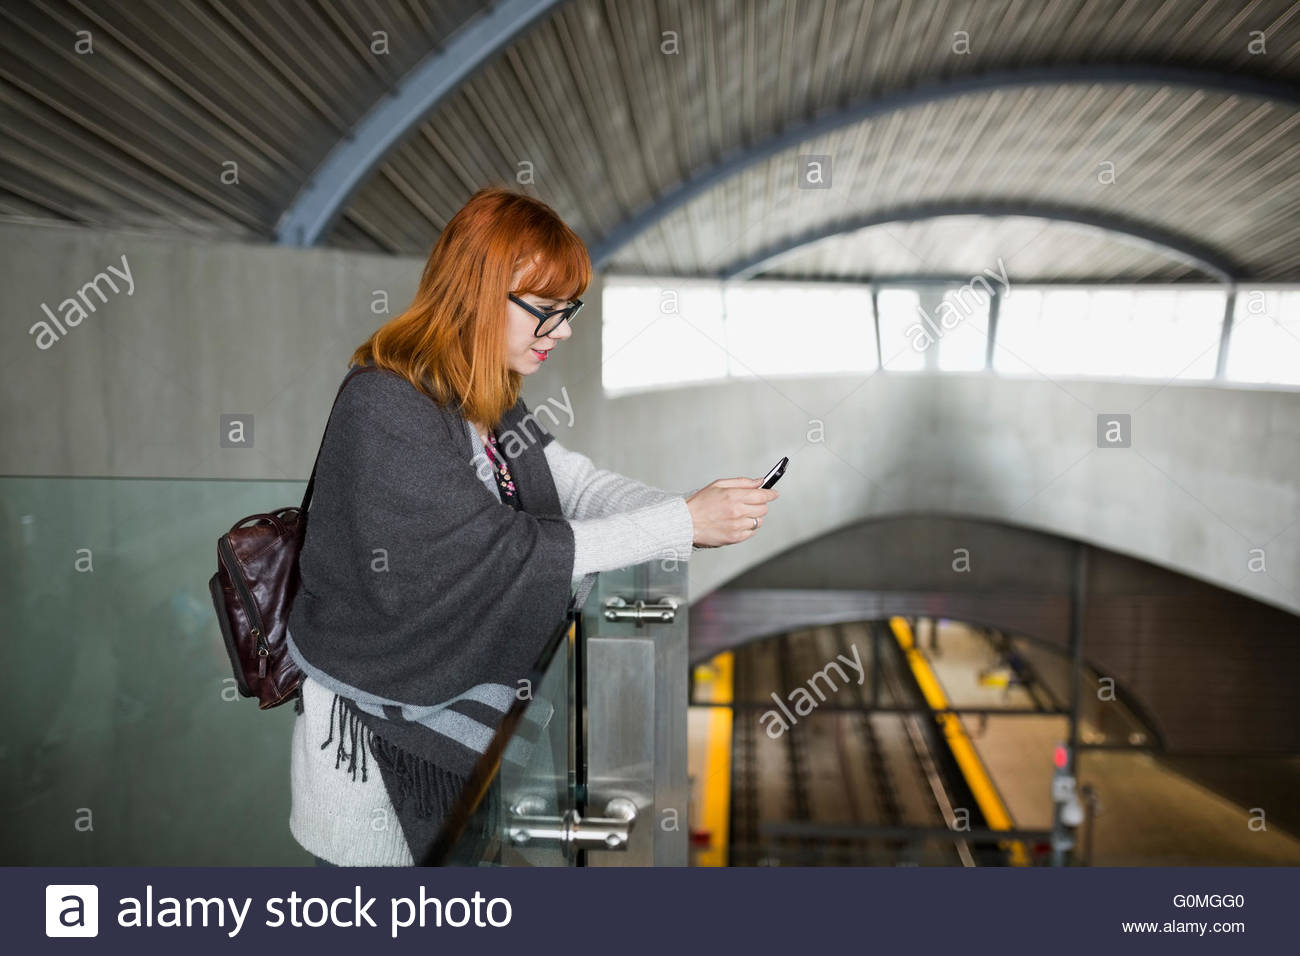 Woman texting with cell phone at train station - Stock Image